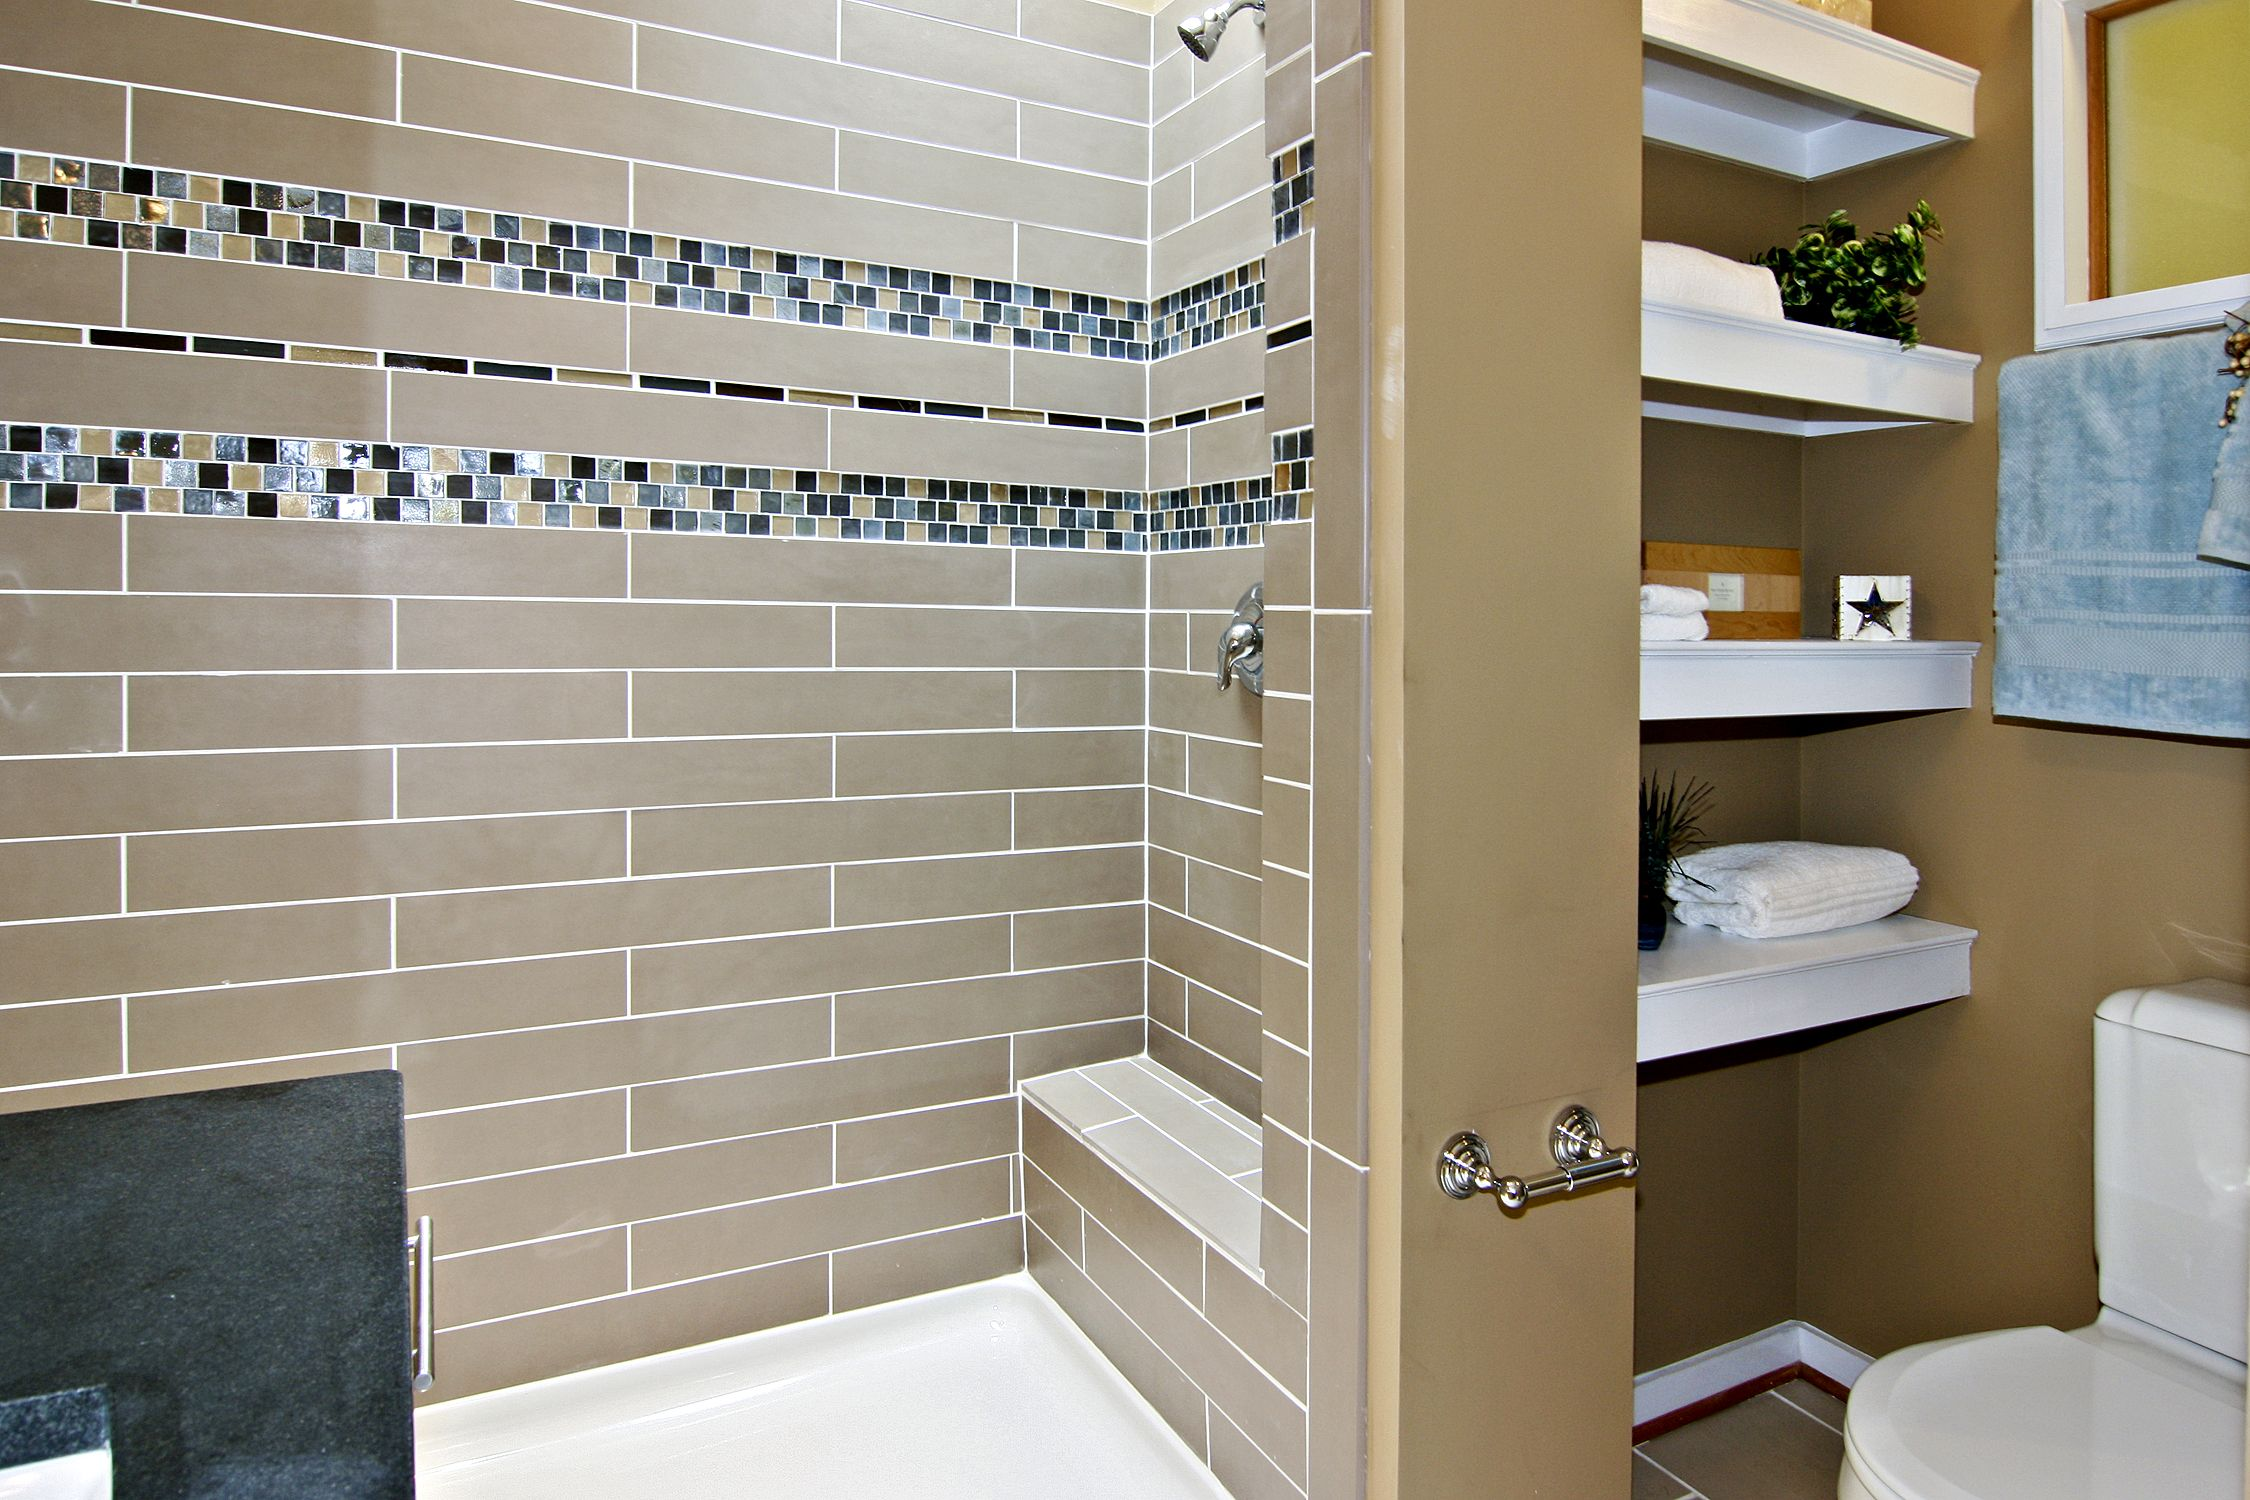 Mln Bathroom Tile Ideas Varying Thickness Of Accent Tile